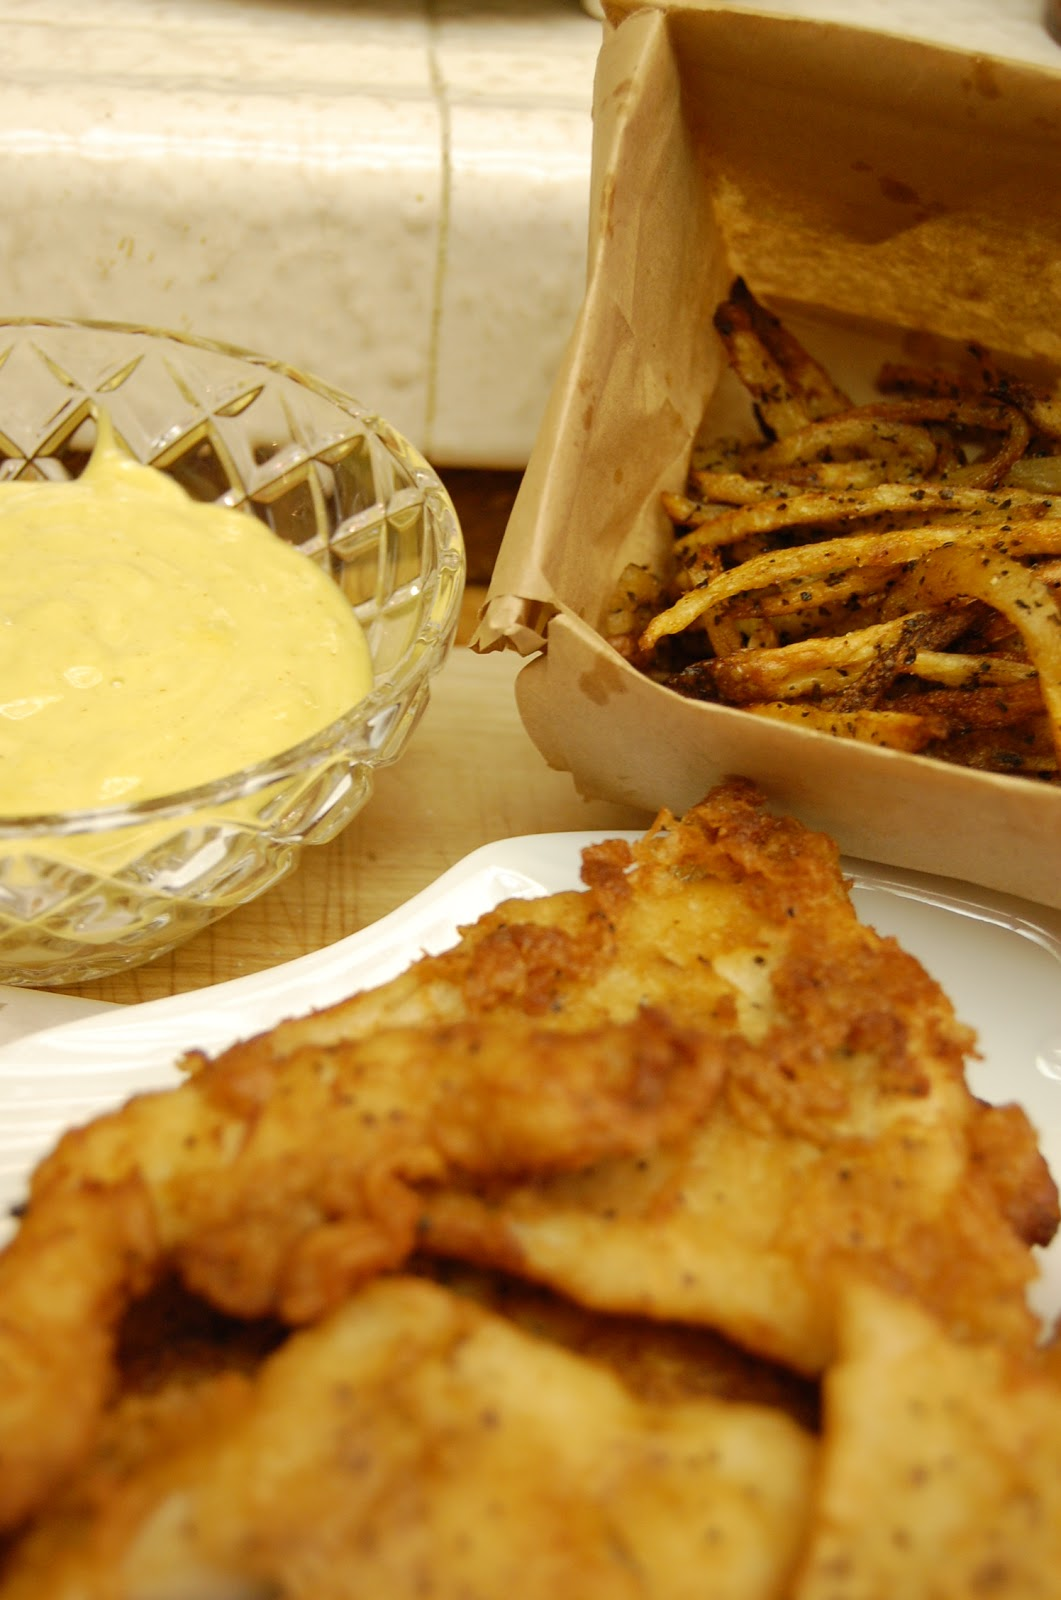 Bread + Butter: Beer Batter Fish and Baked Chips with Garlic Aioli